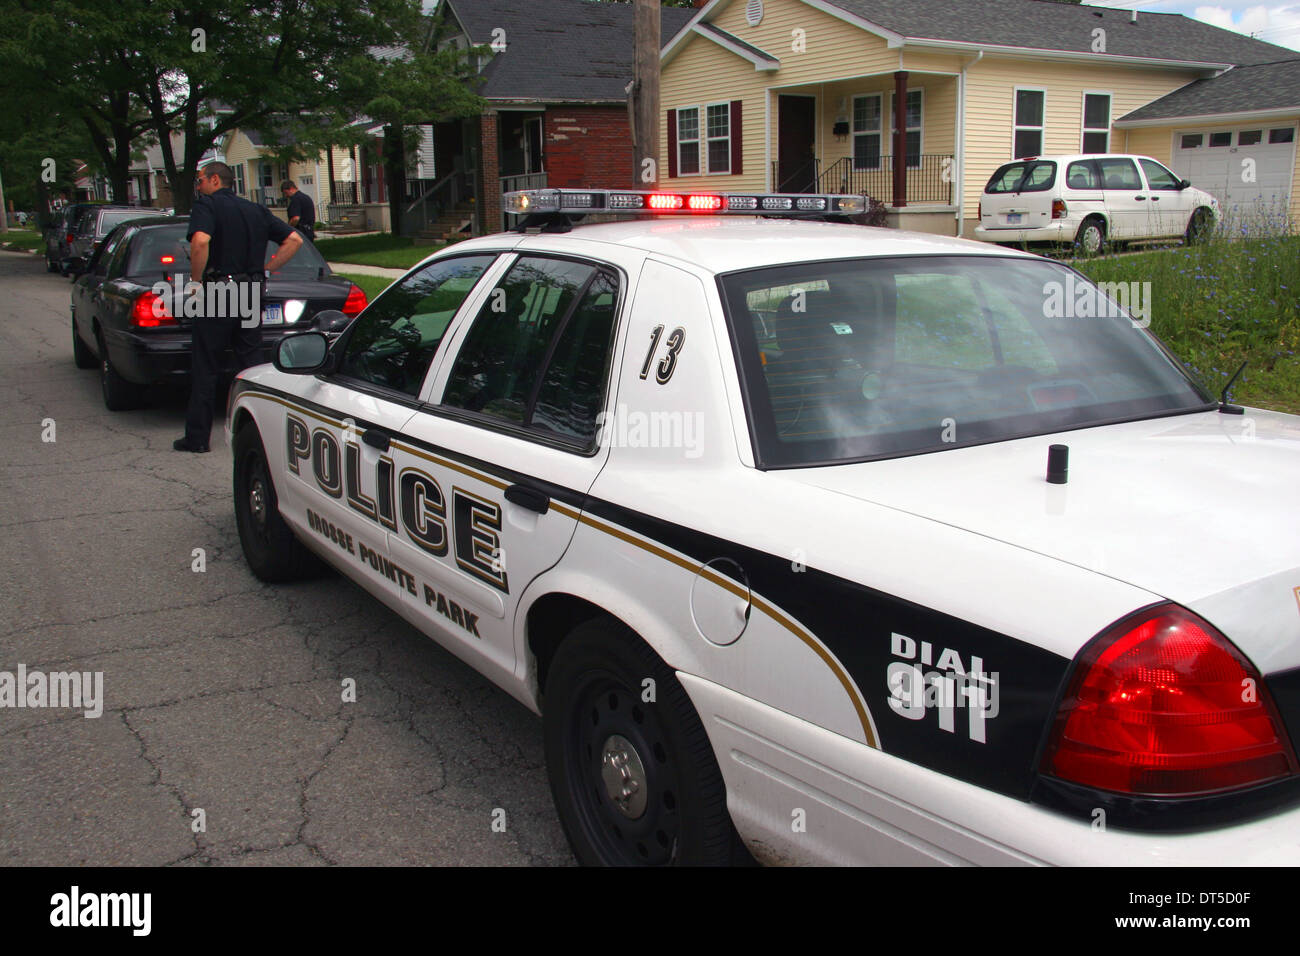 Grosse Pointe Park police department cars in a Detroit street, Michigan, USA. - Stock Image